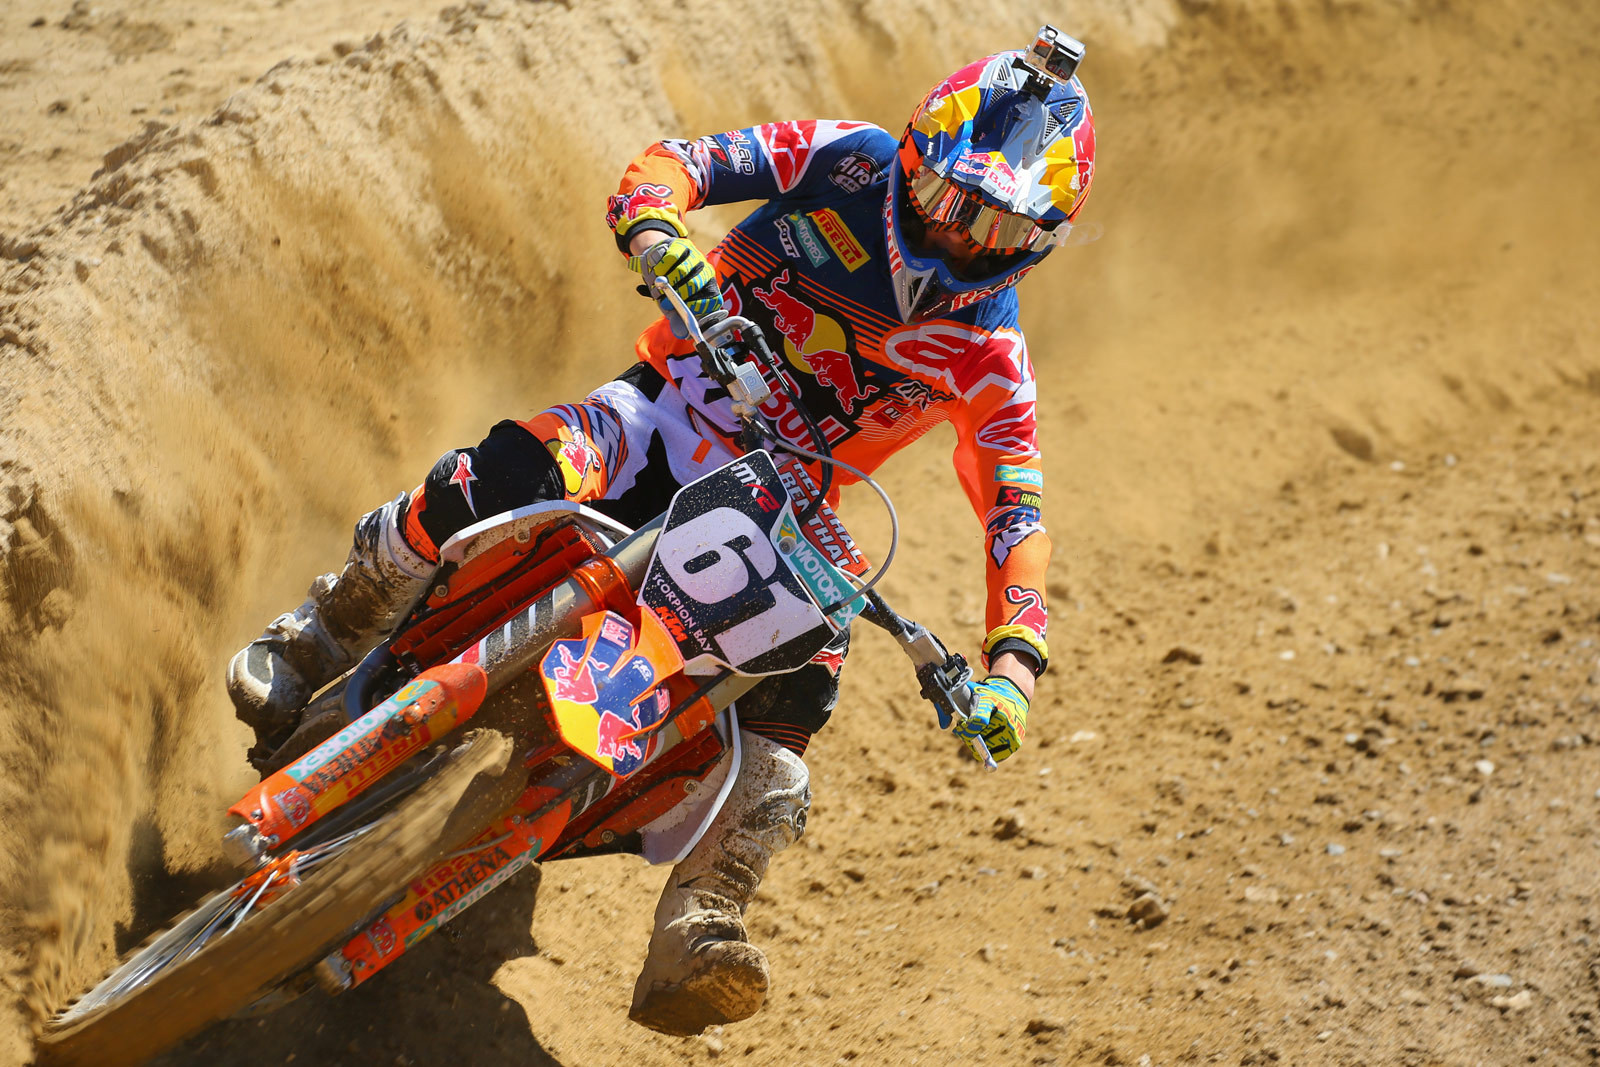 Photo Blast from the MXGP of USA, and Jorge Prado - Photo Blast: MXGP of the USA - Motocross Pictures - Vital MX